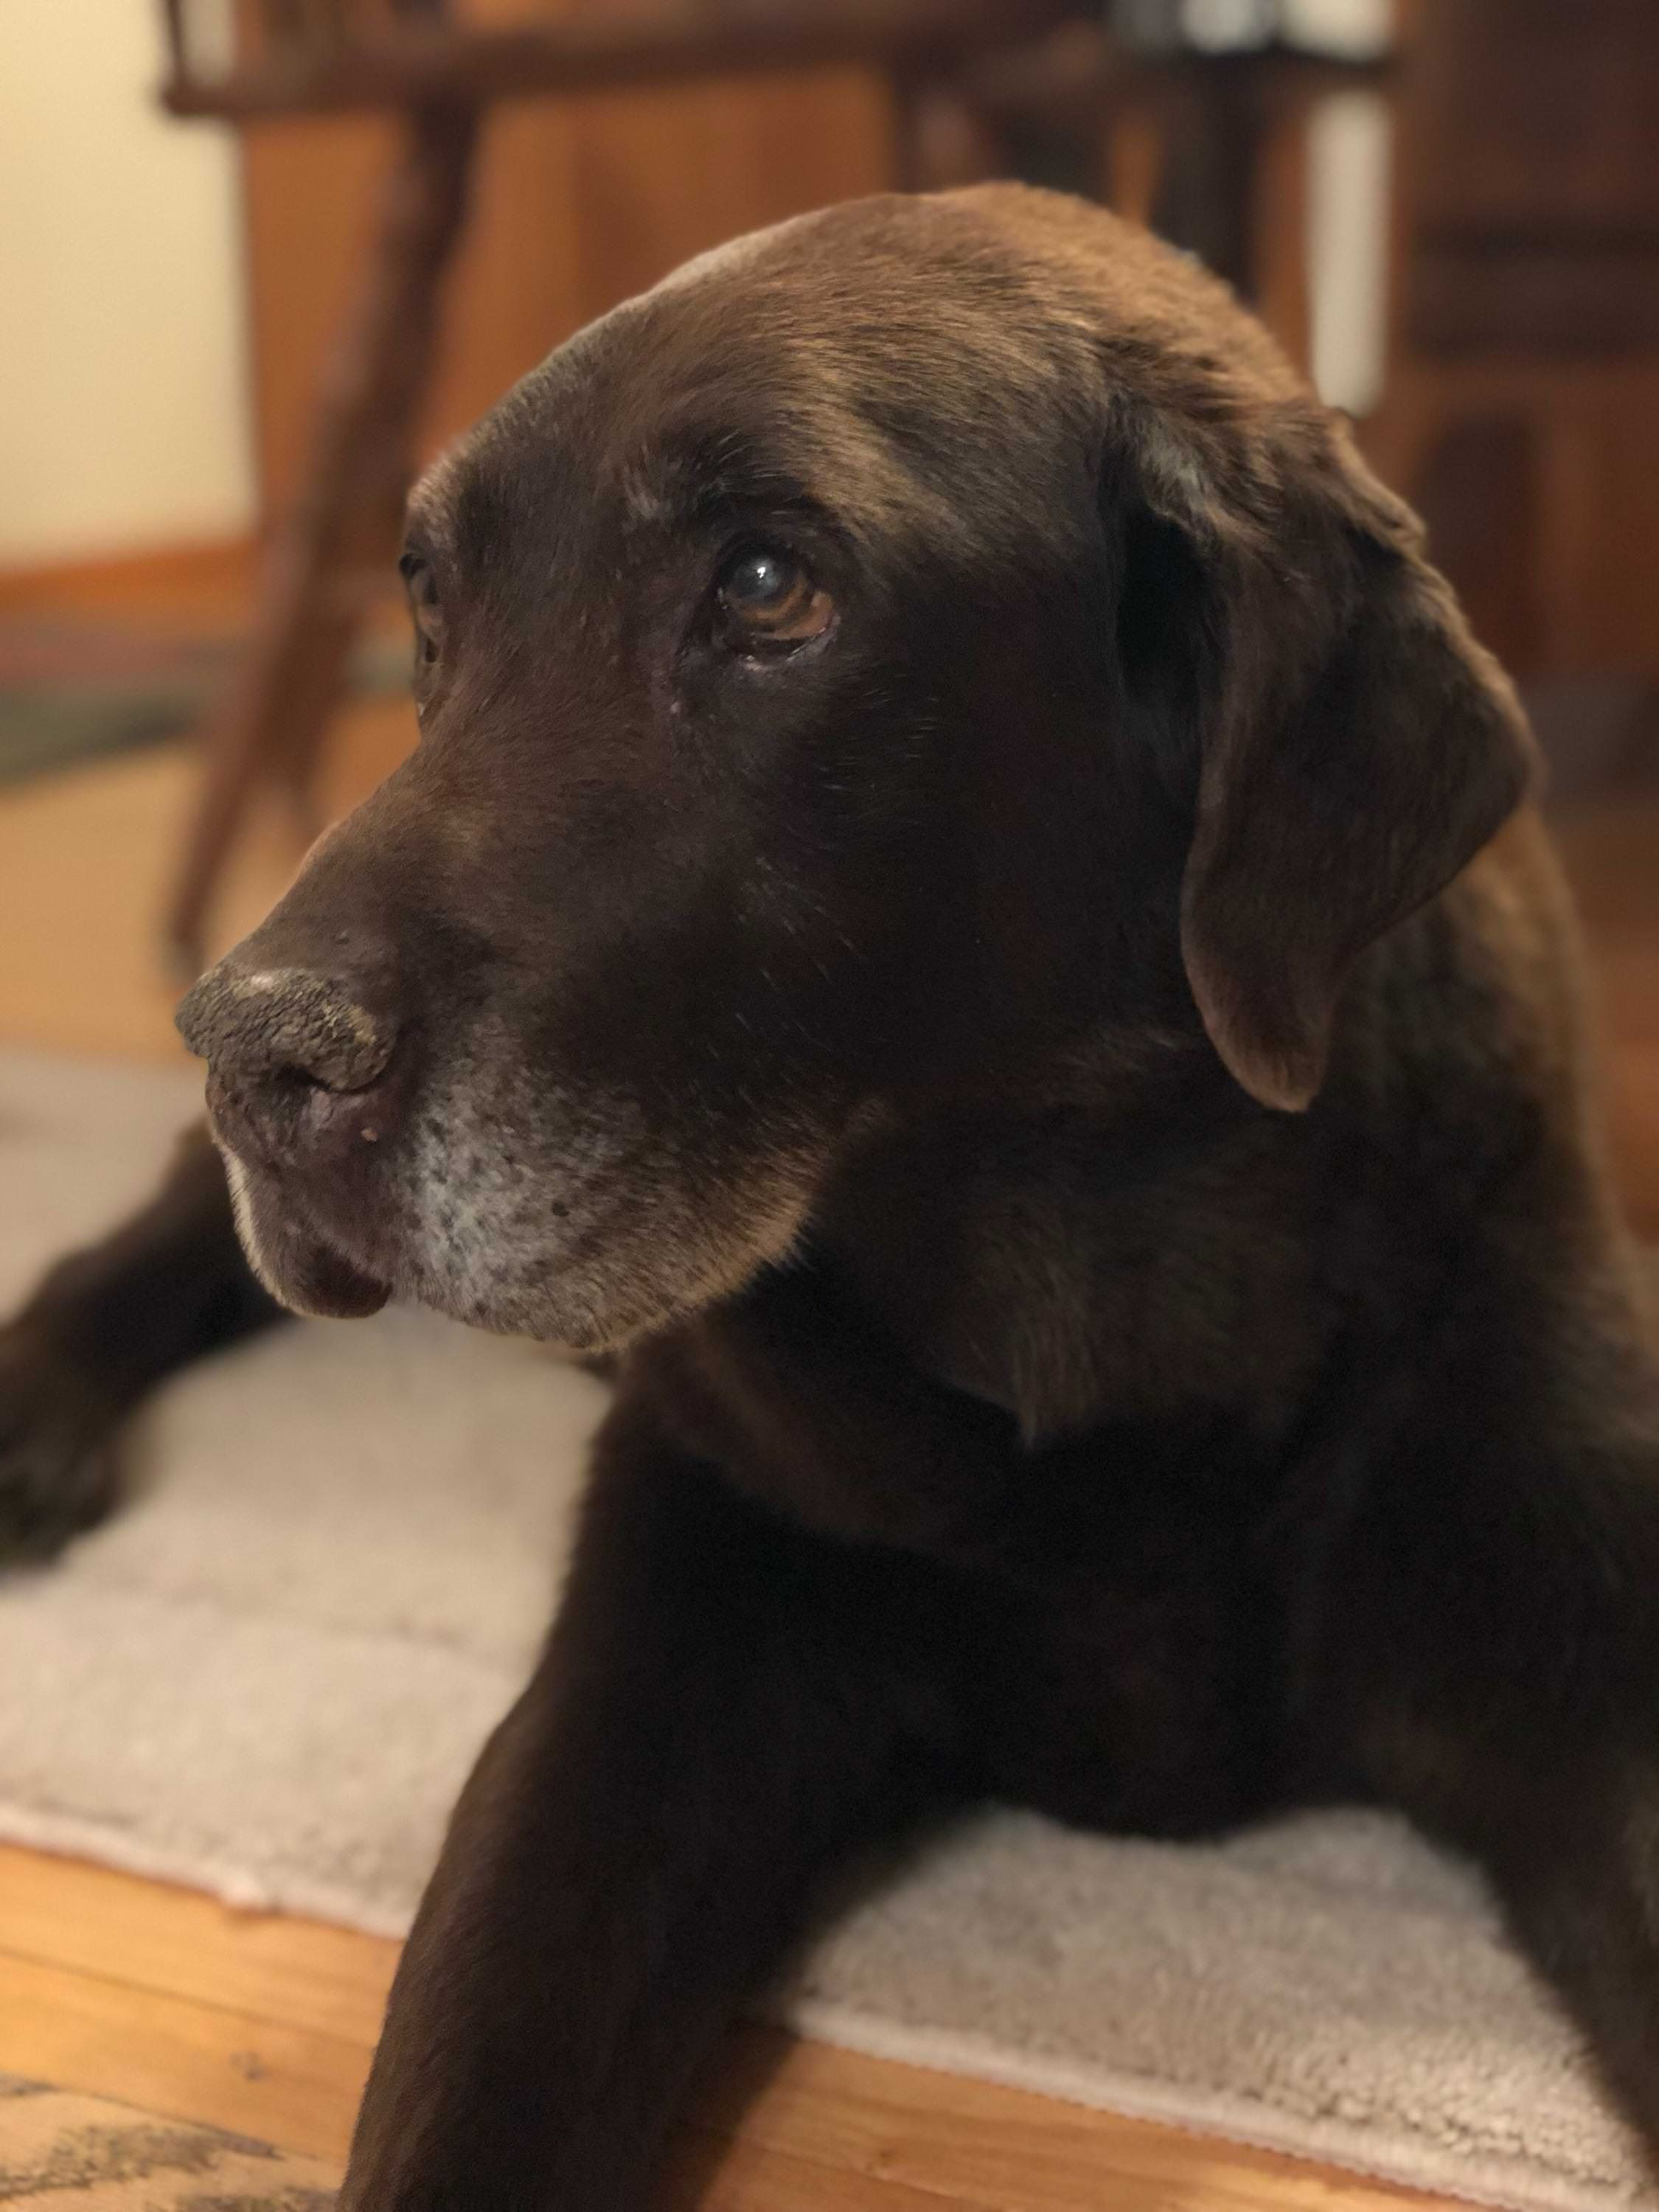 My Childhood Chocolate Lab Turned 17 Years Old The Other Day My Dad Captured This Picture That I Think Labrador Retriever Labrador Retriever Puppies Labrador